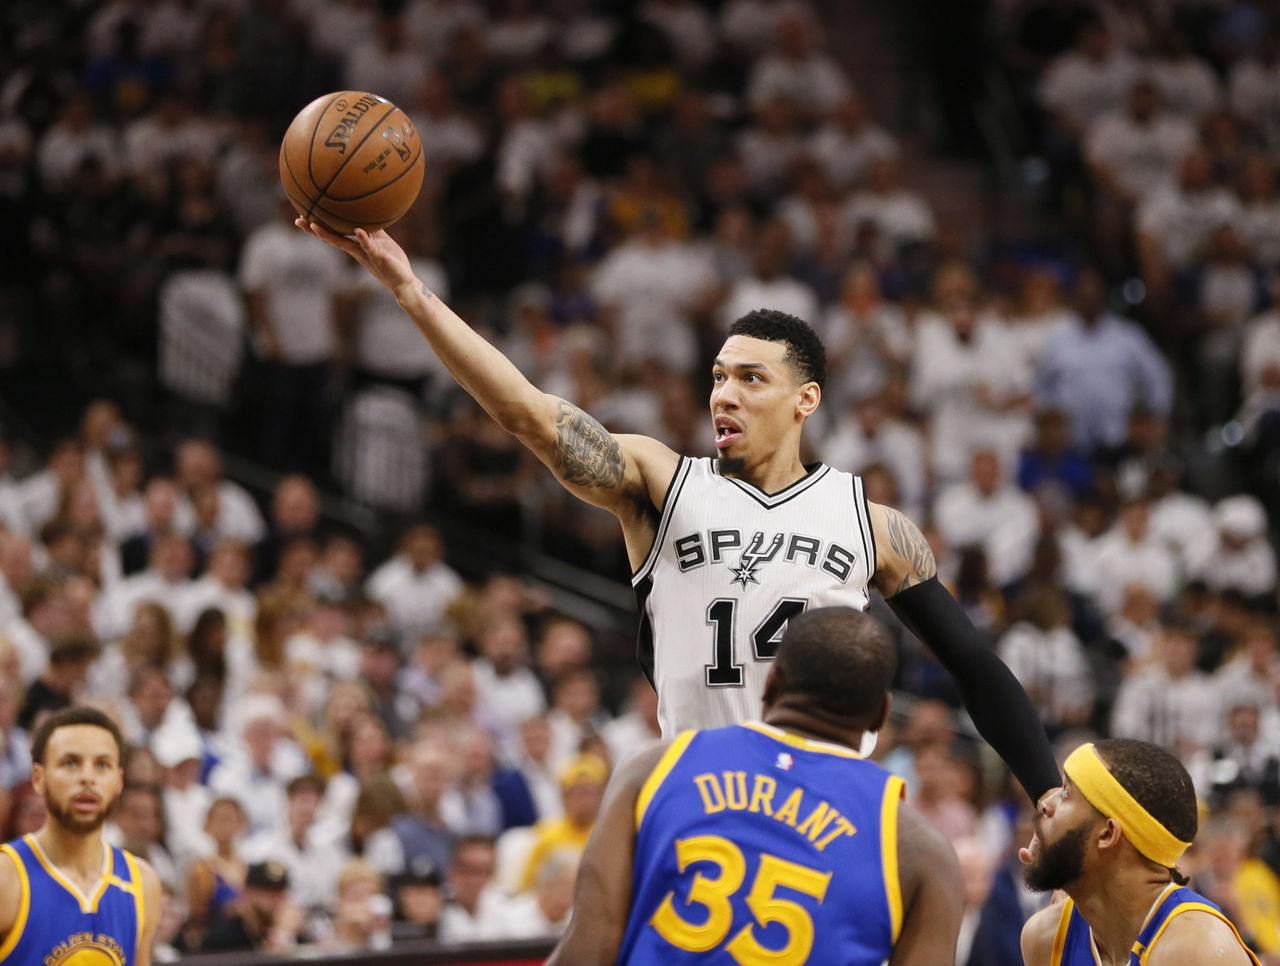 Cropped 2017 05 21t014434z 1035705164 nocid rtrmadp 3 nba playoffs golden state warriors at san antonio spurs